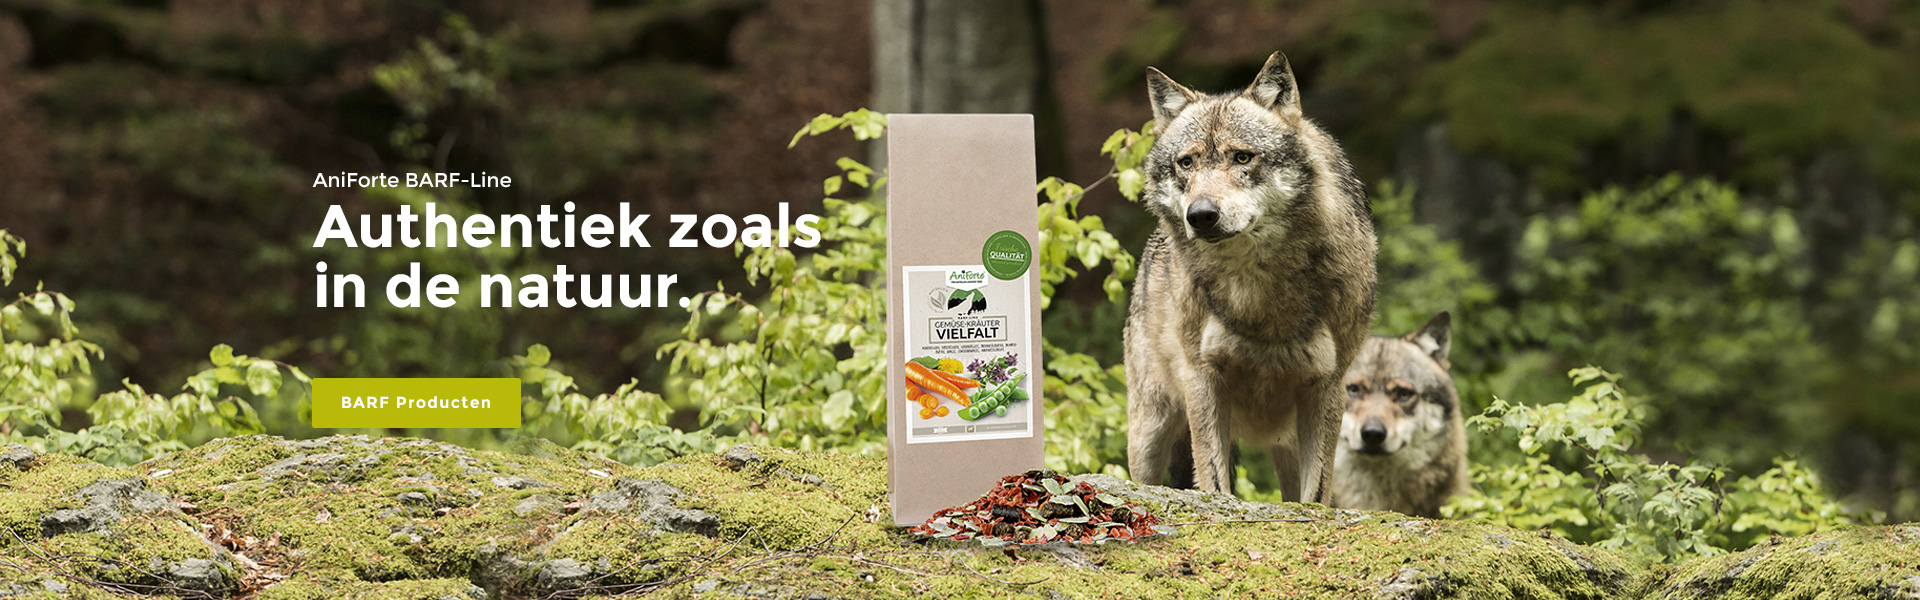 AniForte® - Authentiek zoals in de natuur